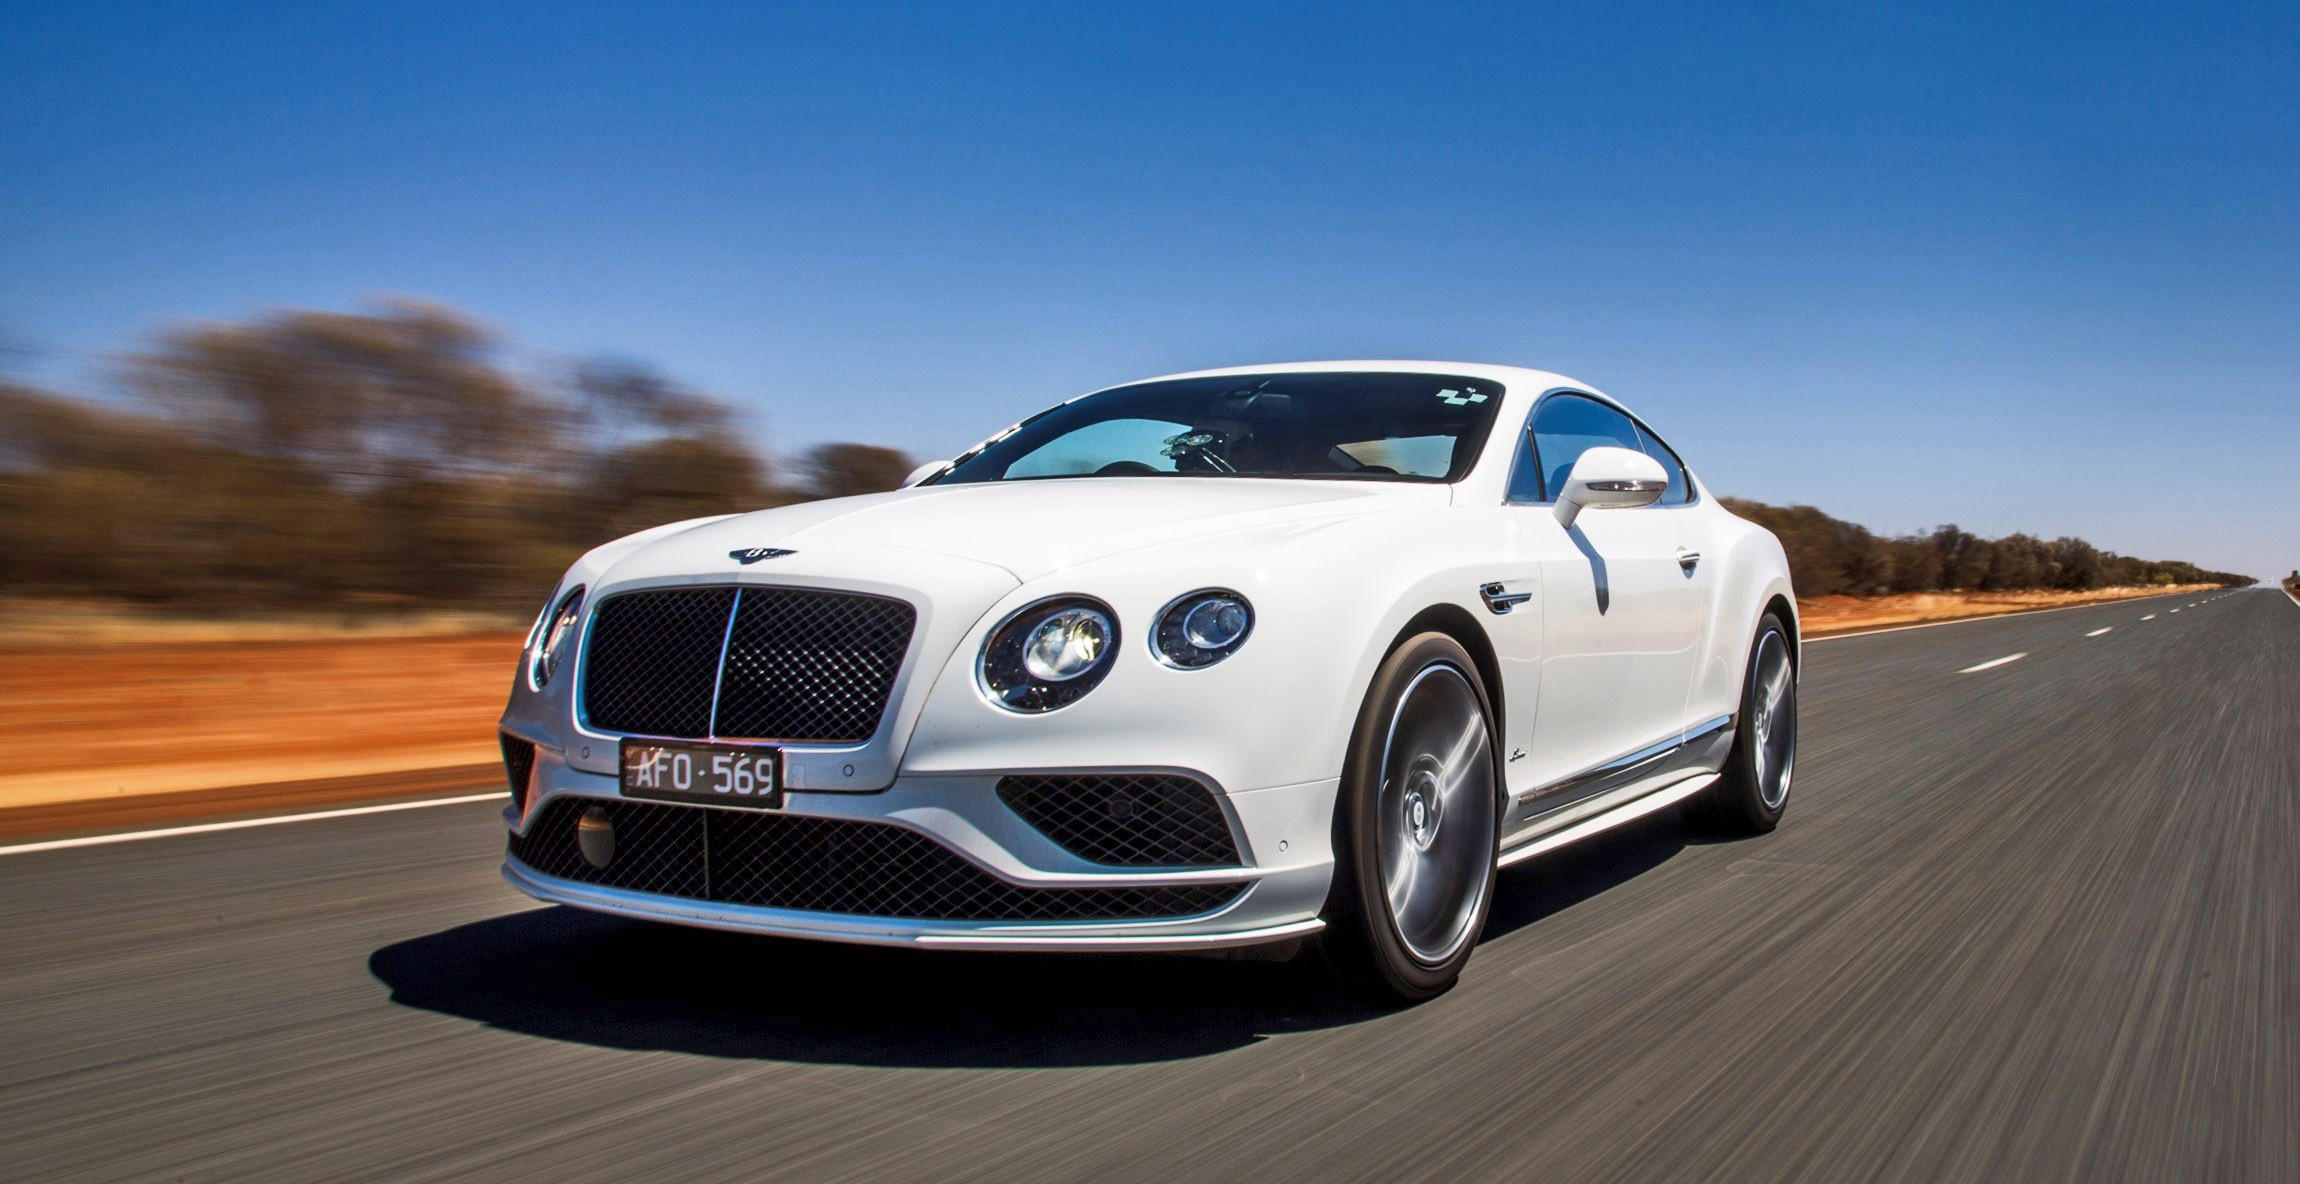 2016 bentley continental gt speed proves its 206mph vmax. Black Bedroom Furniture Sets. Home Design Ideas